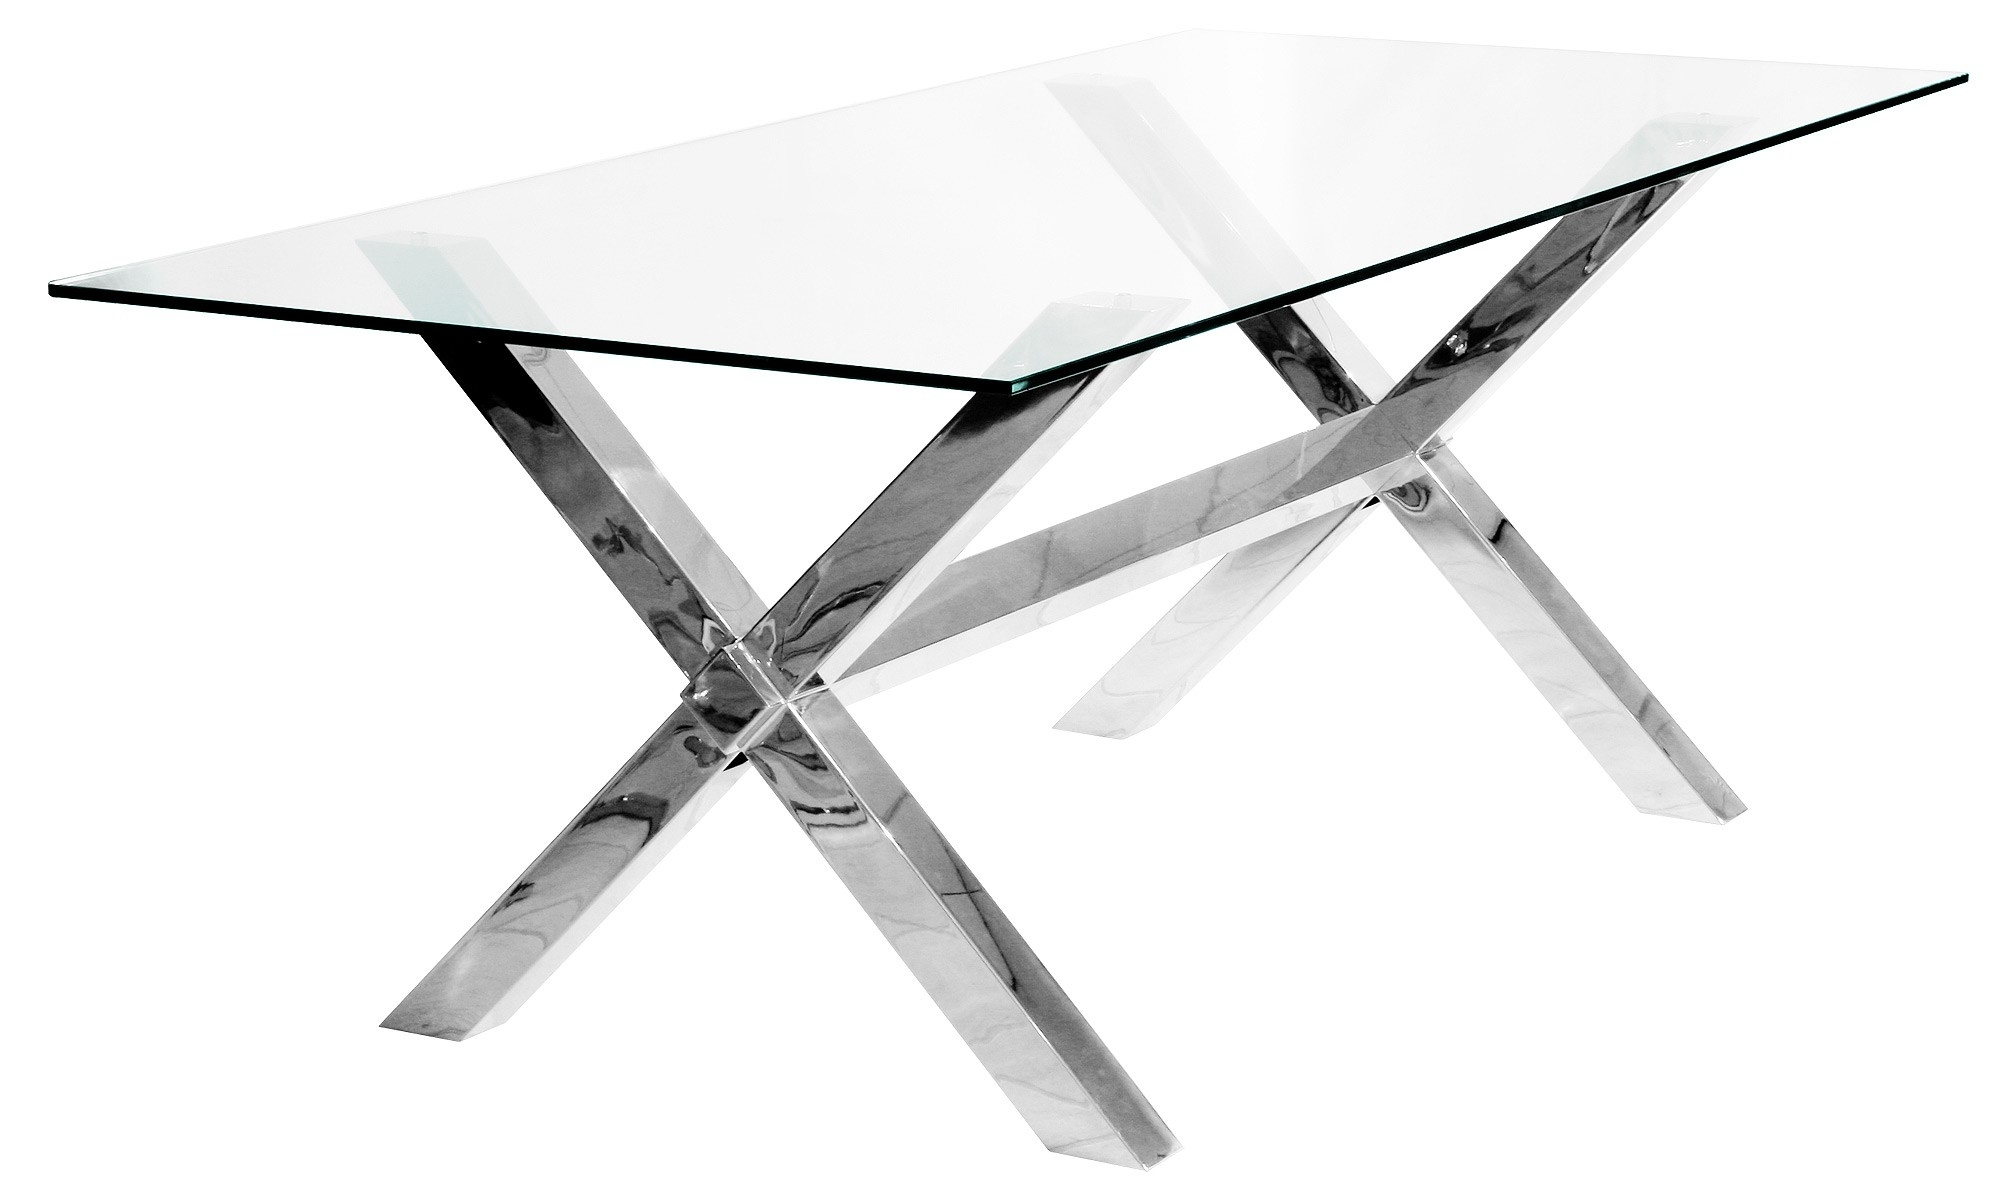 Crossly Rectangular 8 Seater Dining Table – Be Fabulous! Intended For 2018 Black 8 Seater Dining Tables (View 19 of 25)